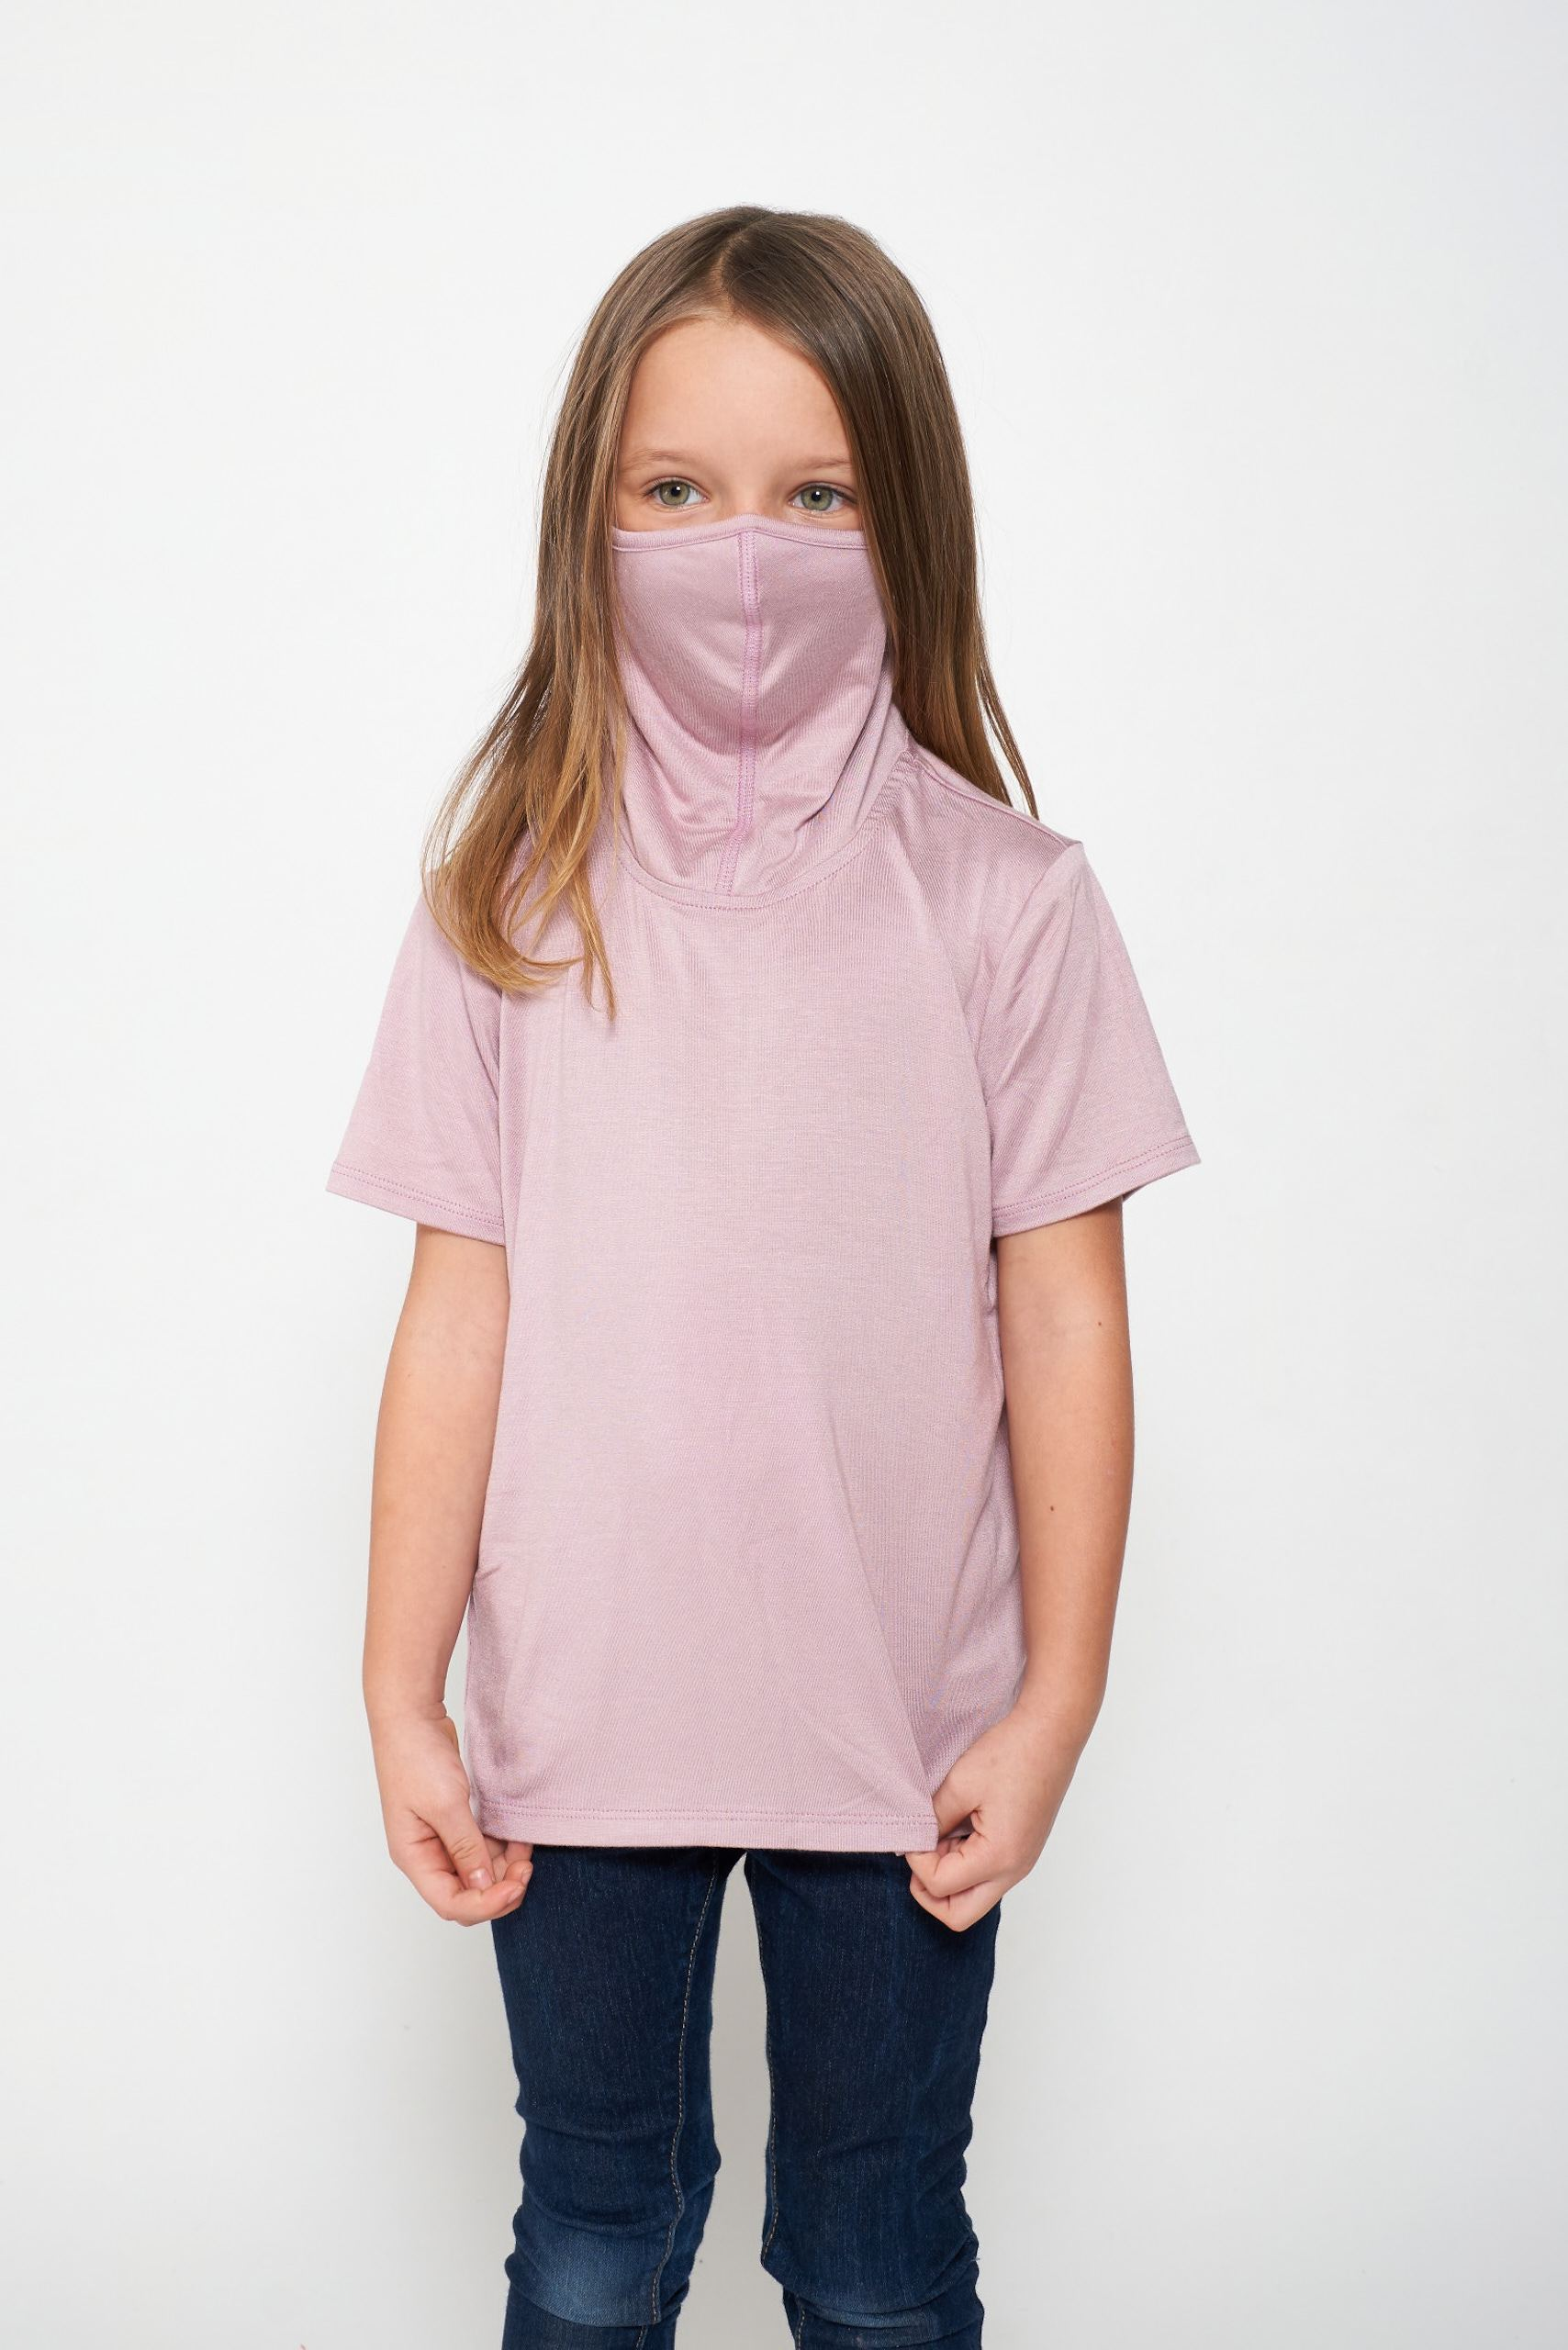 Kids Short Sleeve USA Light Pink Shmask™ Earloop Face Mask for Kids and Adults